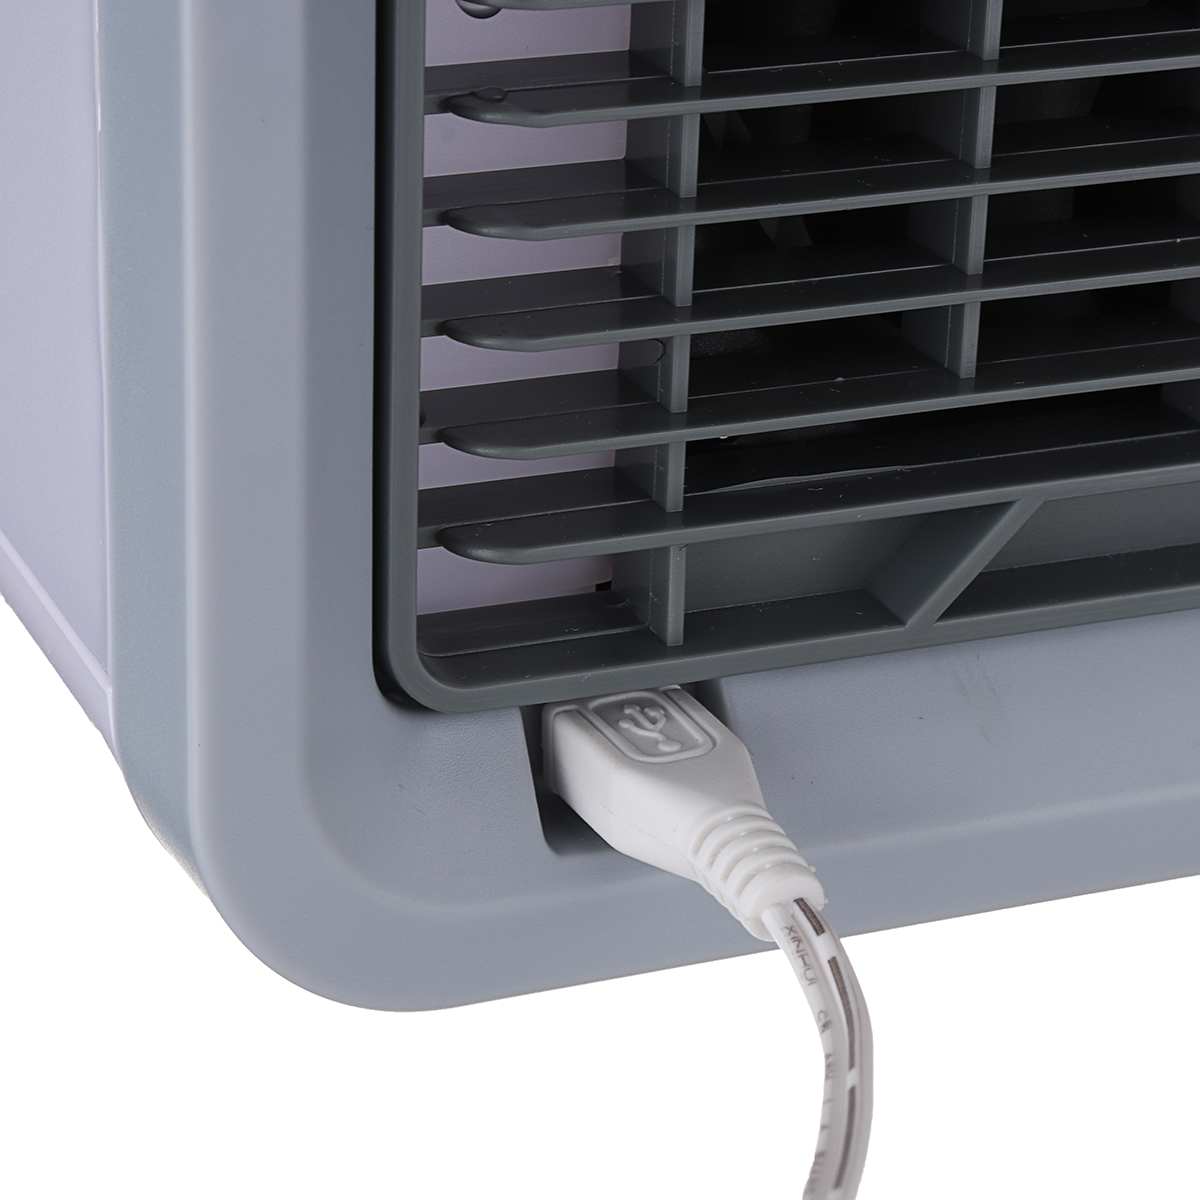 8W 12V USB Mini Summer Arctic Space Cooler Air Cooling Equipment Air Conditioner Home Office LED